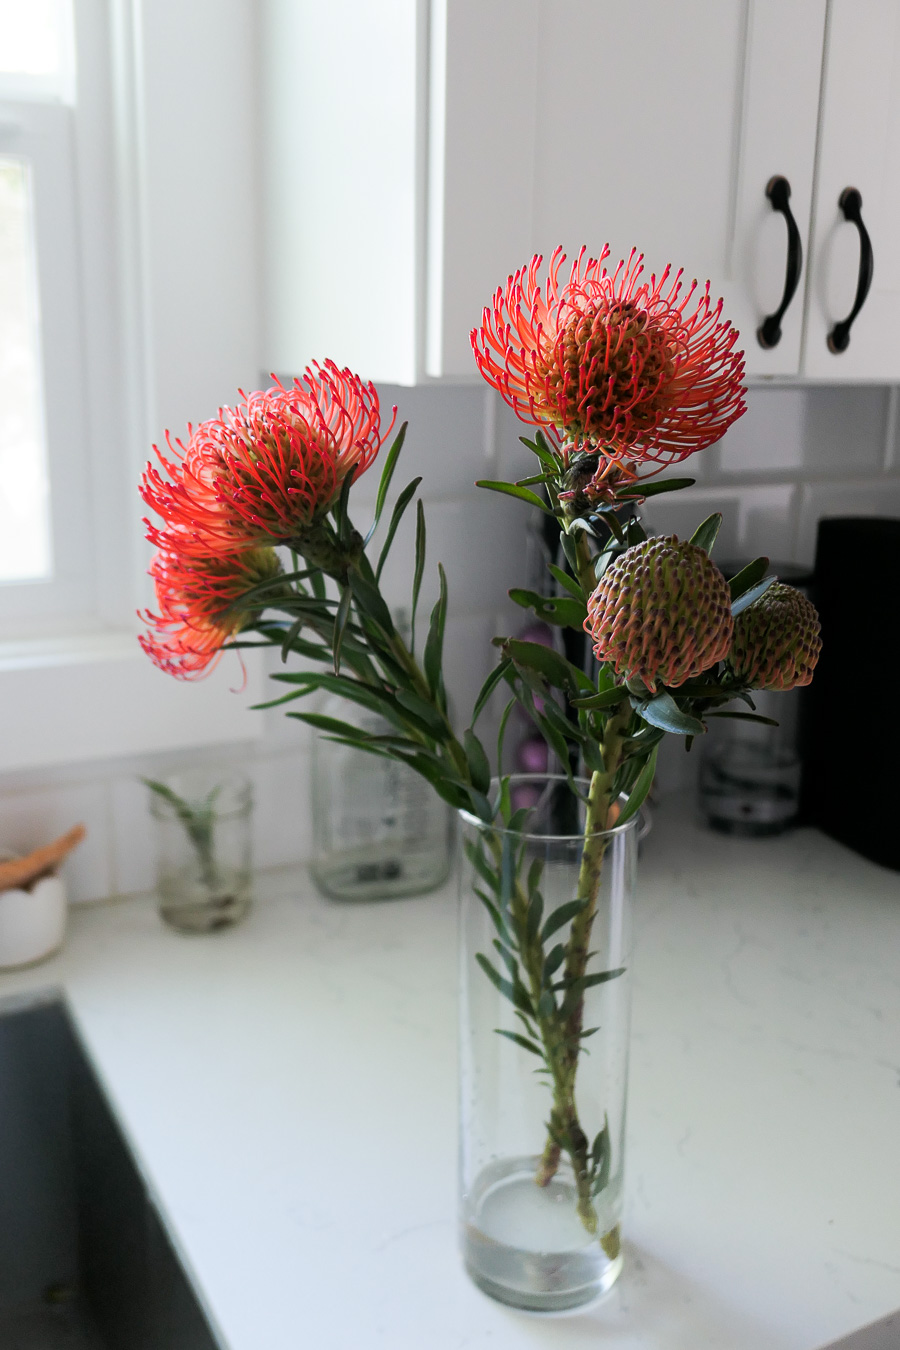 red pincushions in vase - sustainability guilt